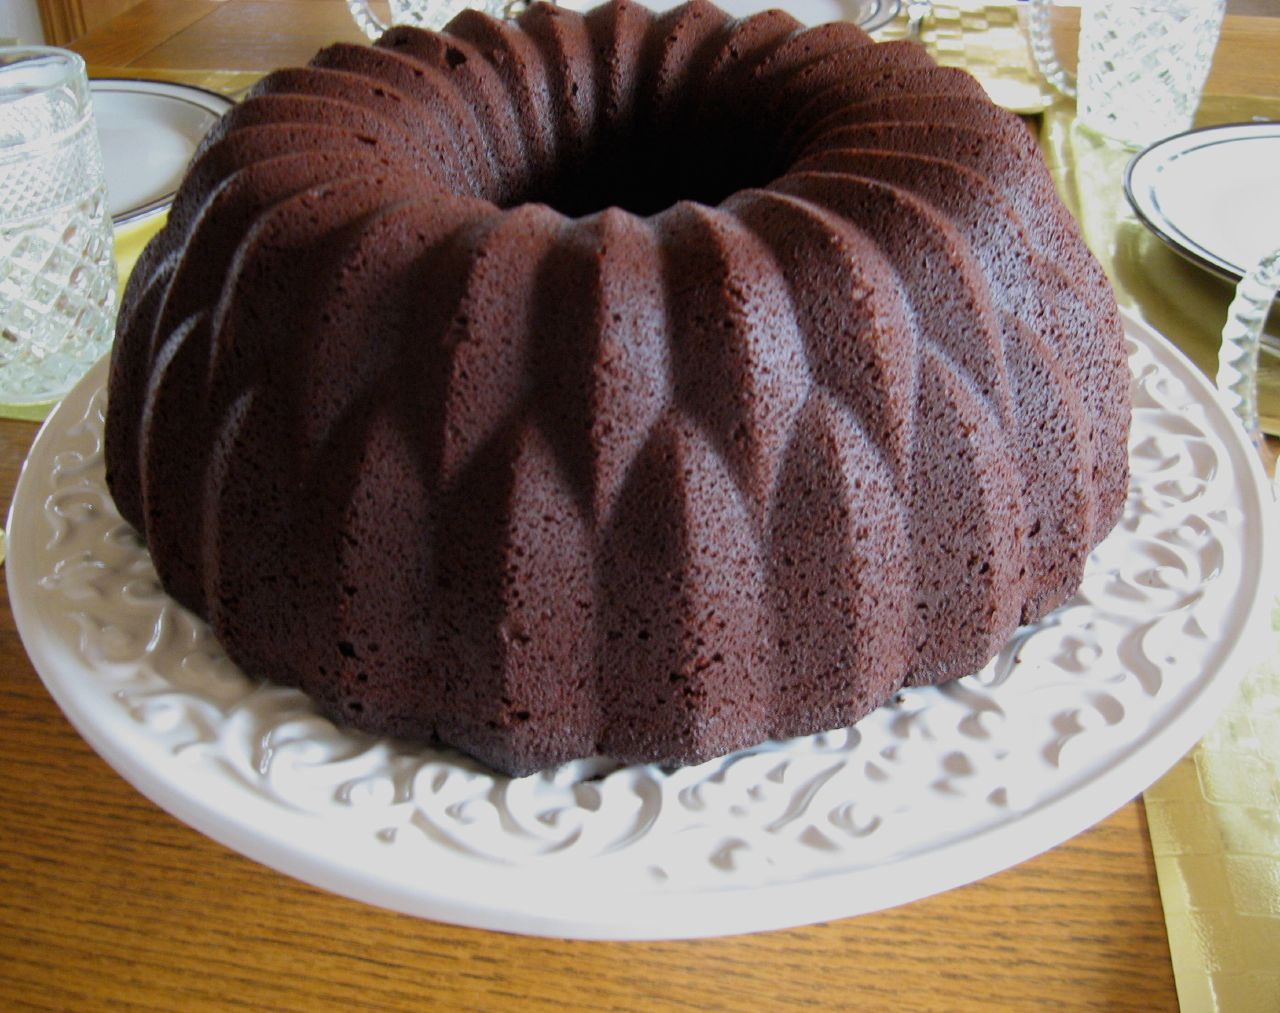 File:Chocolate Sour Cream Bundt Cake, March 2008.jpg - Wikimedia ...